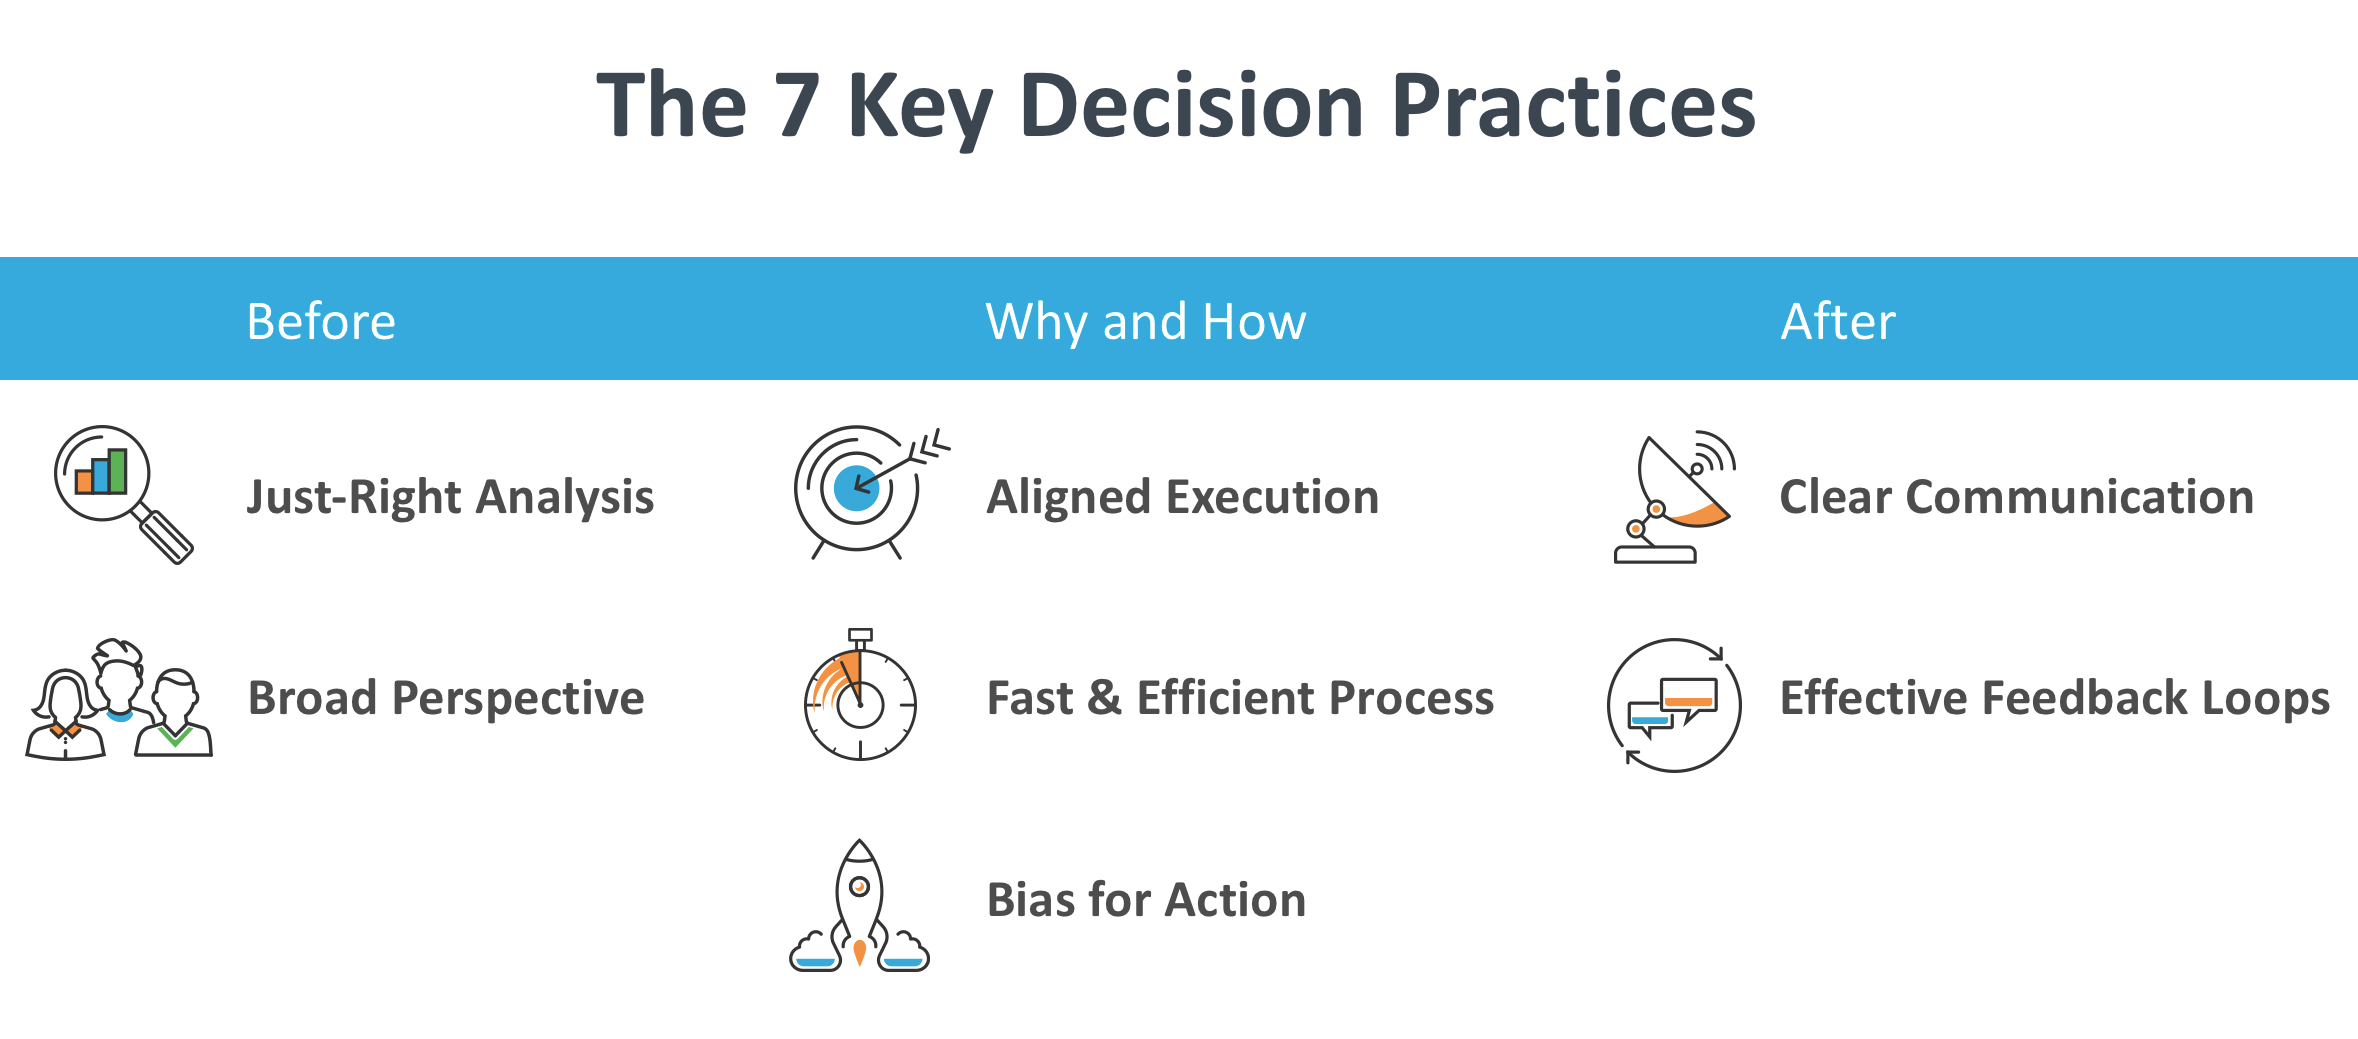 7 Key Decision Practices